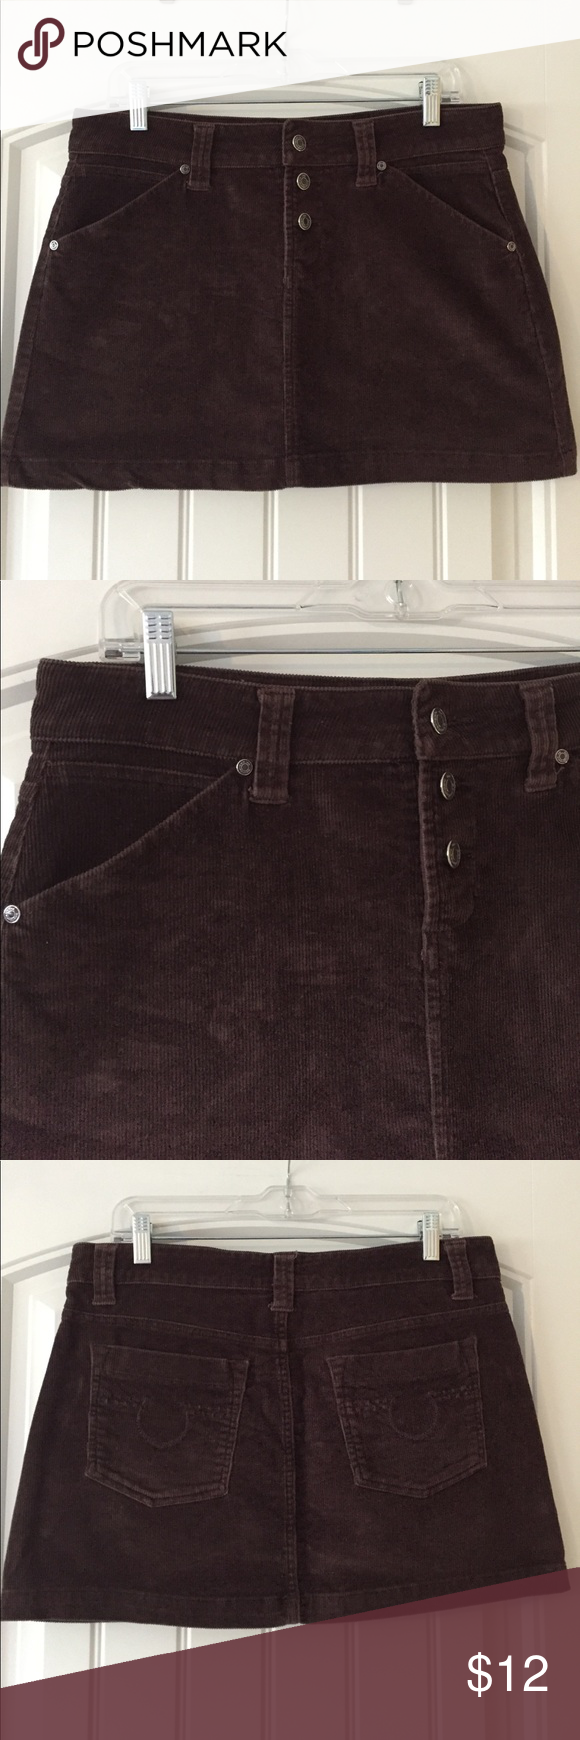 Brown corduroy skirt (juniors 9) Perfect for fall! True brown corduroy mini. 90% cotton 2% spandex. ***All items in my closet are in EUC and come from a smoke free home. Please ask any questions that you have*** No Boundaries Skirts Mini